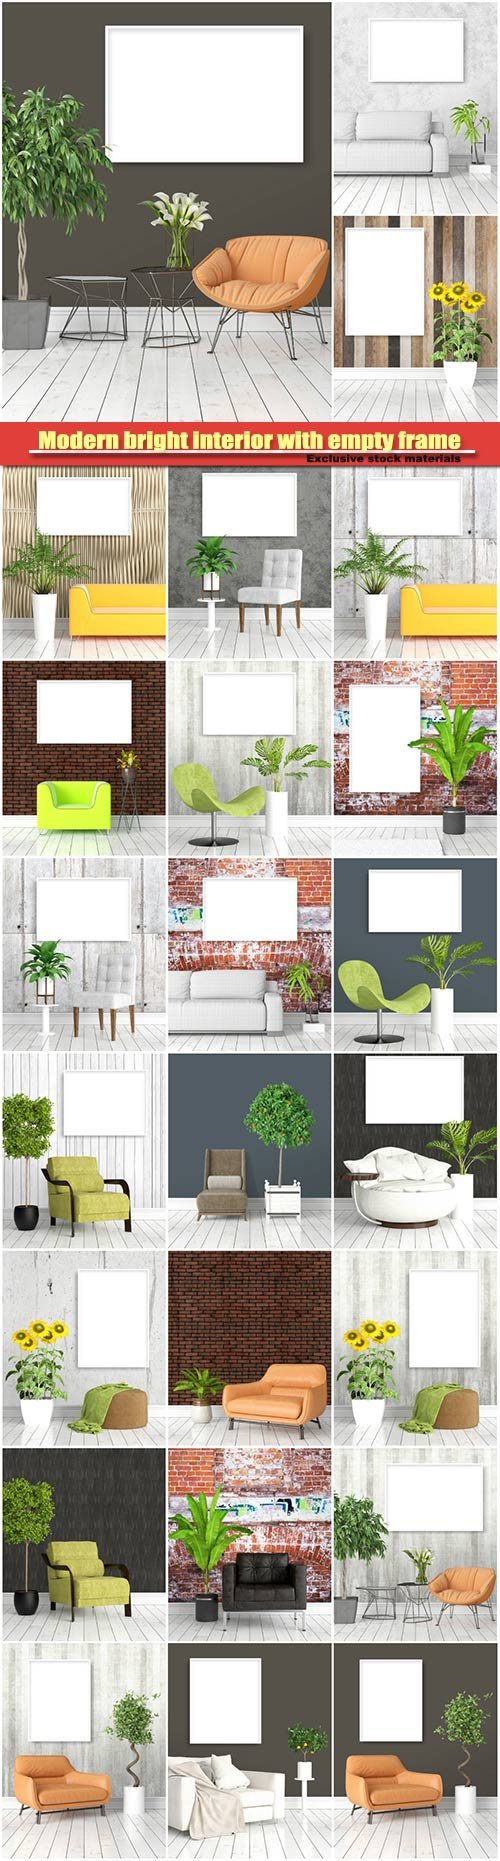 Modern bright interior with empty frame, 3D rendering